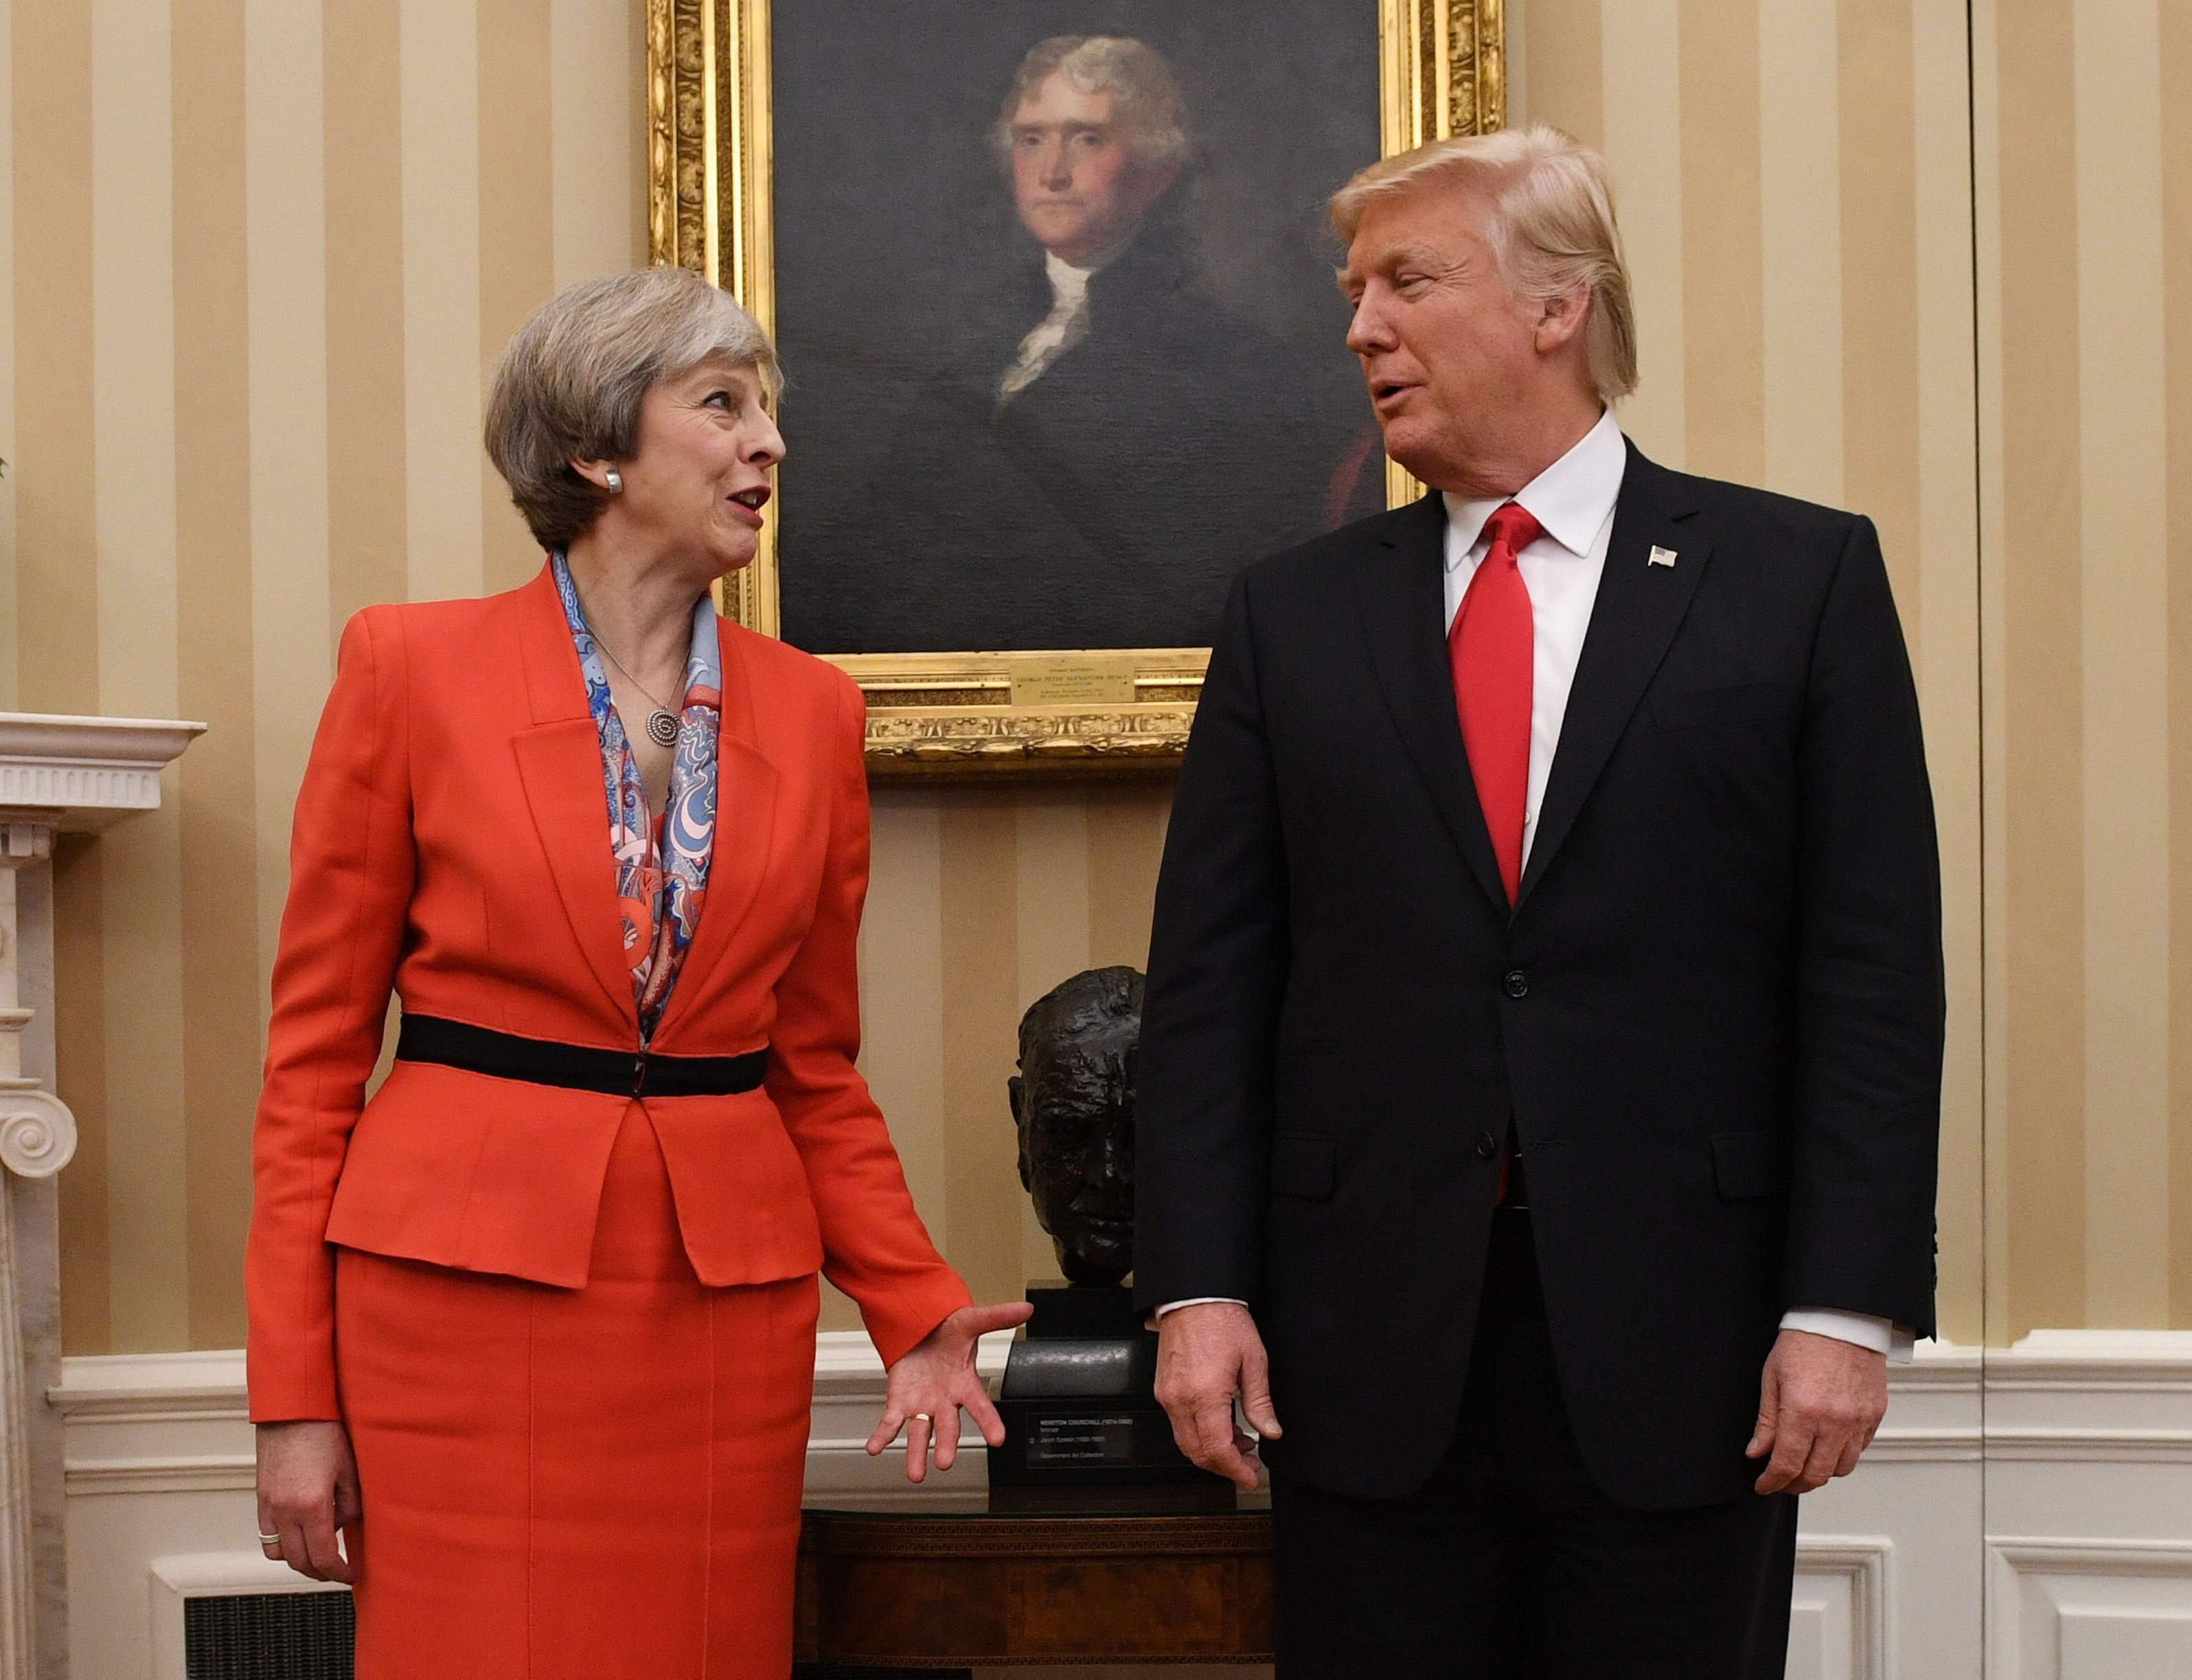 Trump to Make Working Visit to United Kingdom in Early 2018